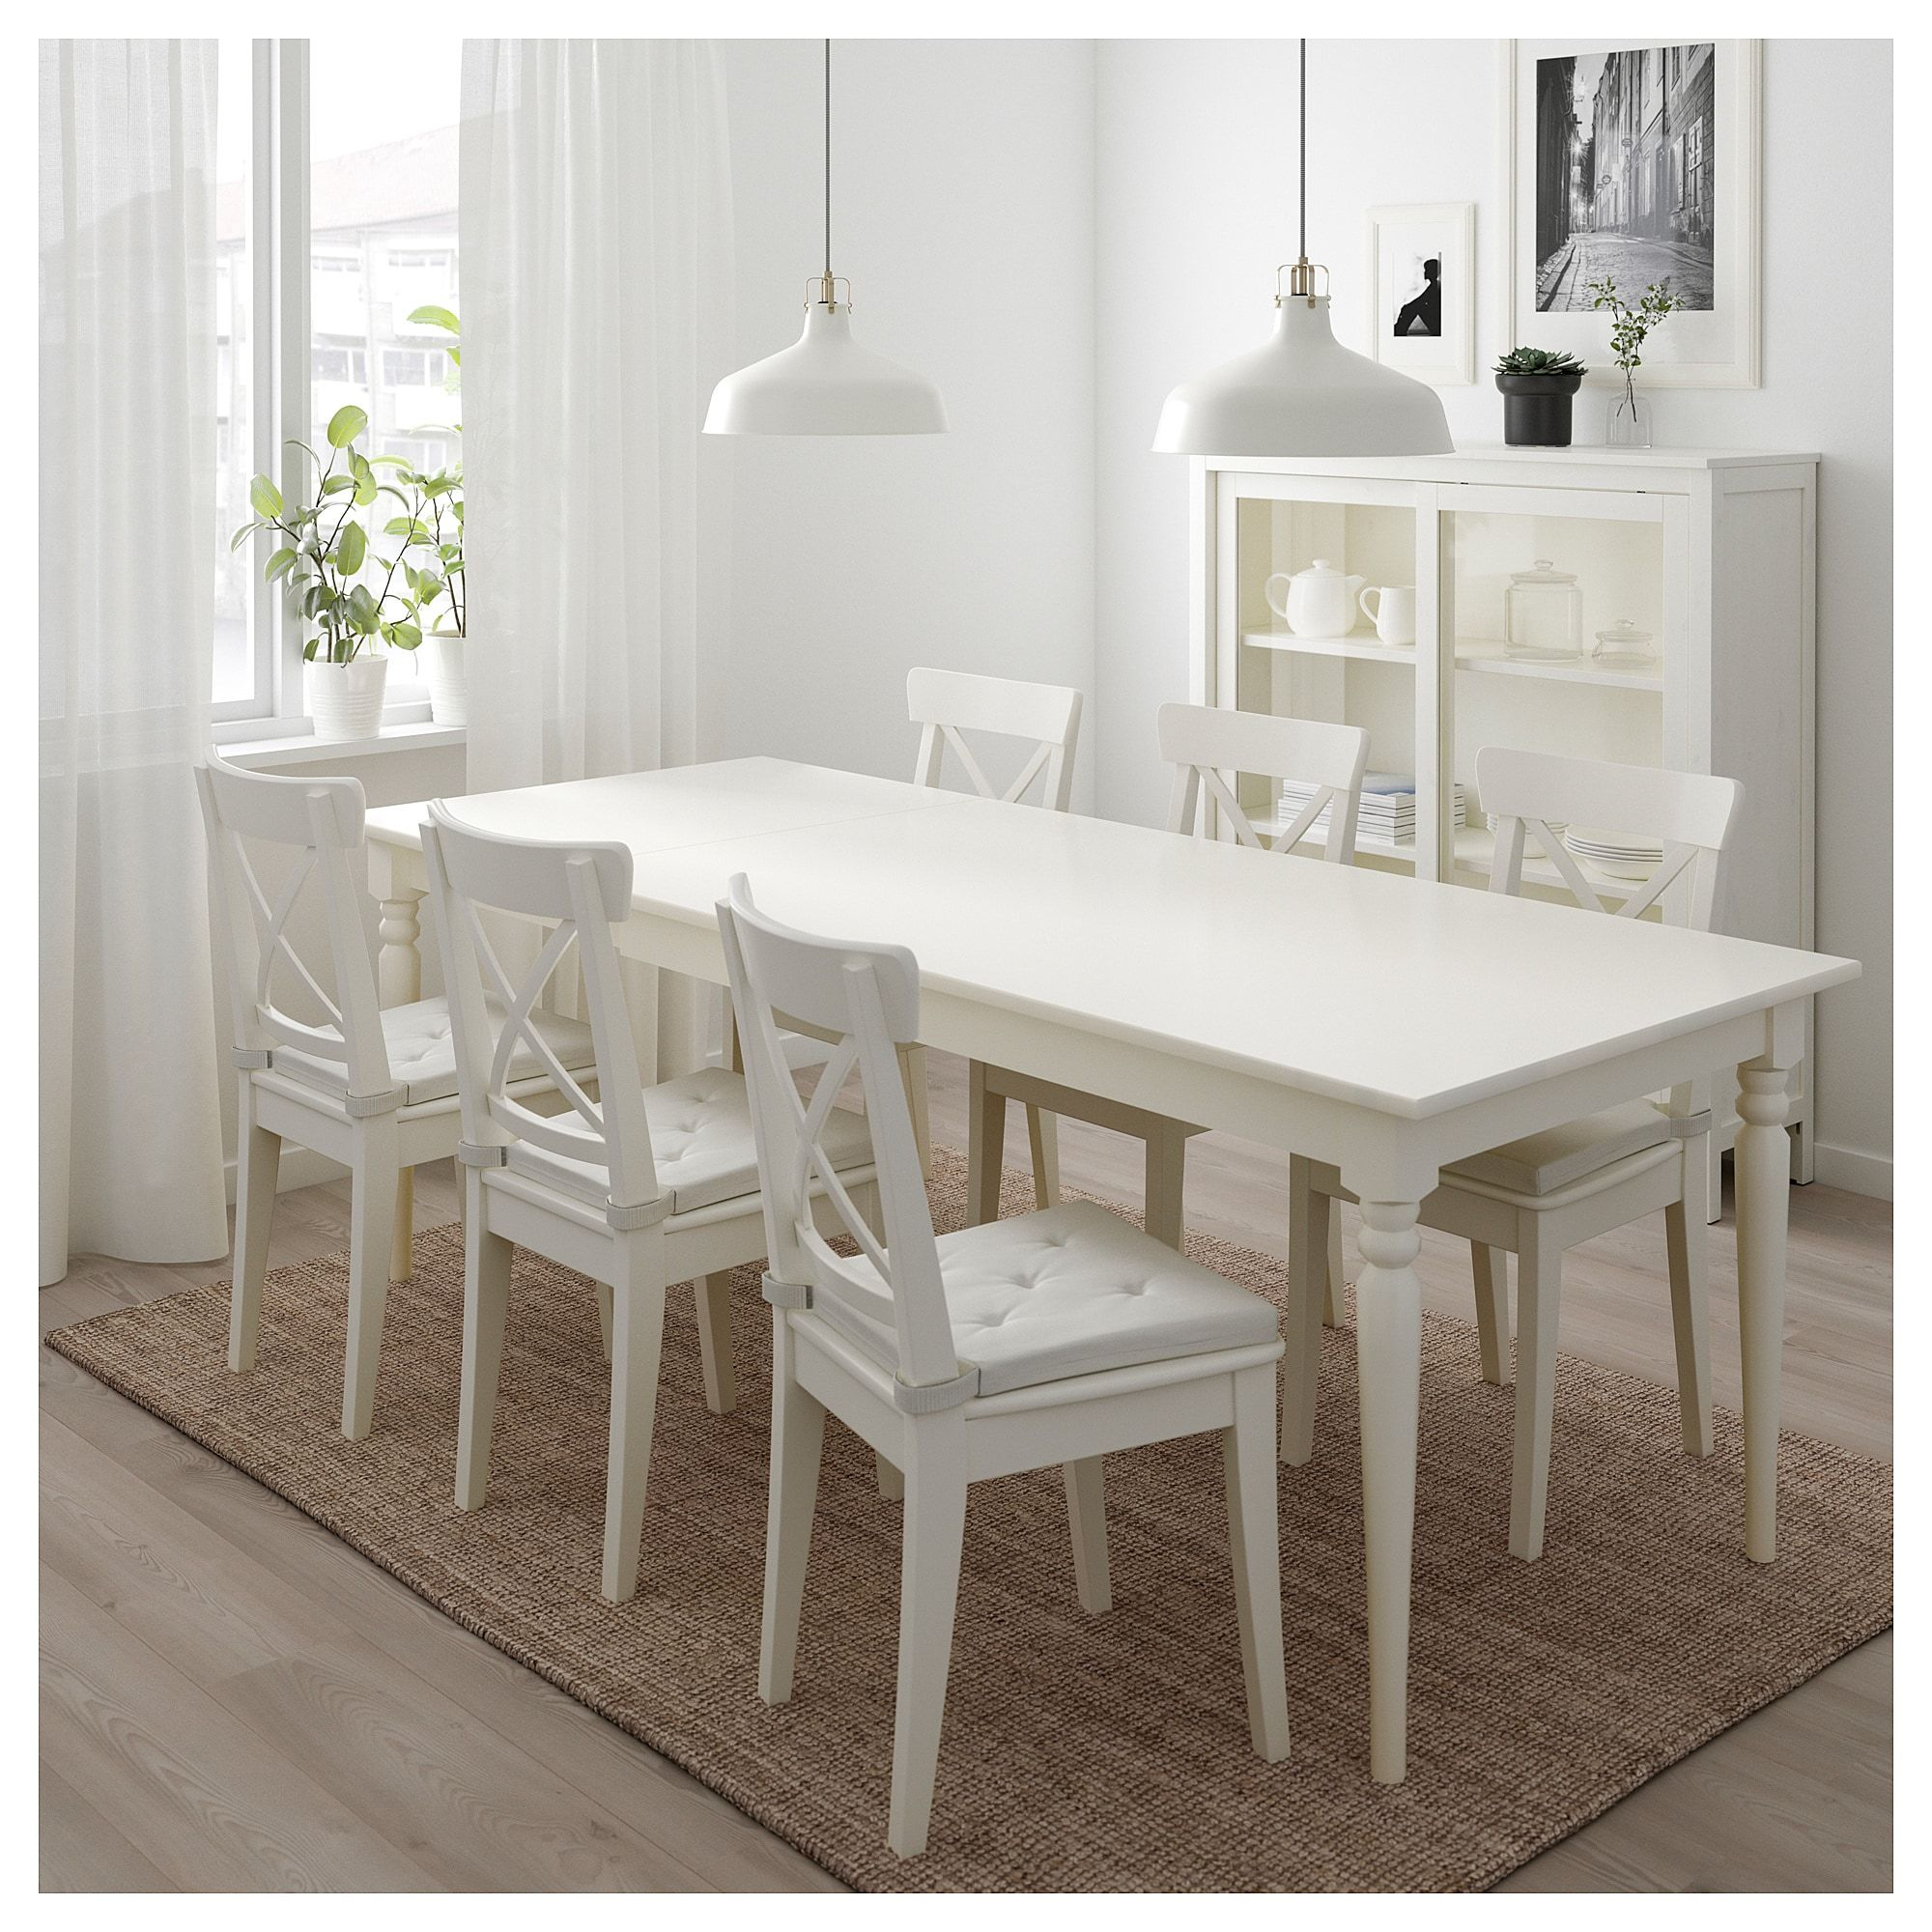 Ikea Ingatorp White Extendable Table In 2019 Dining